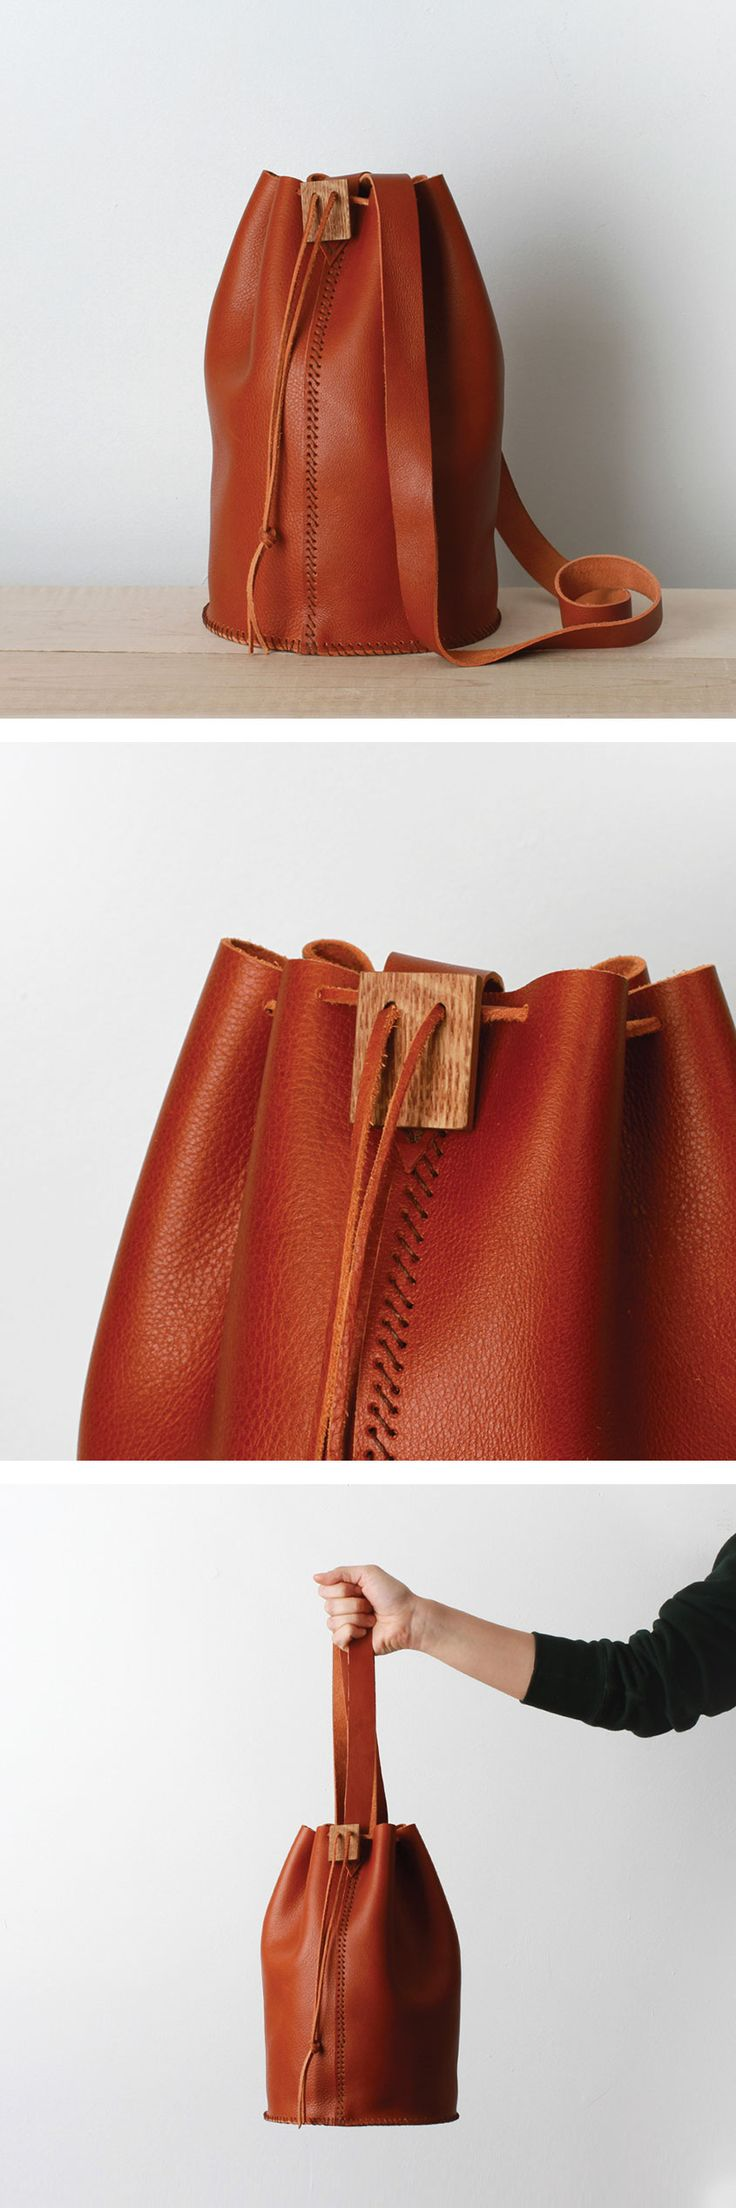 Scarr // Handmade & Hand-sewn Leather Accessories // IAMTHELAB